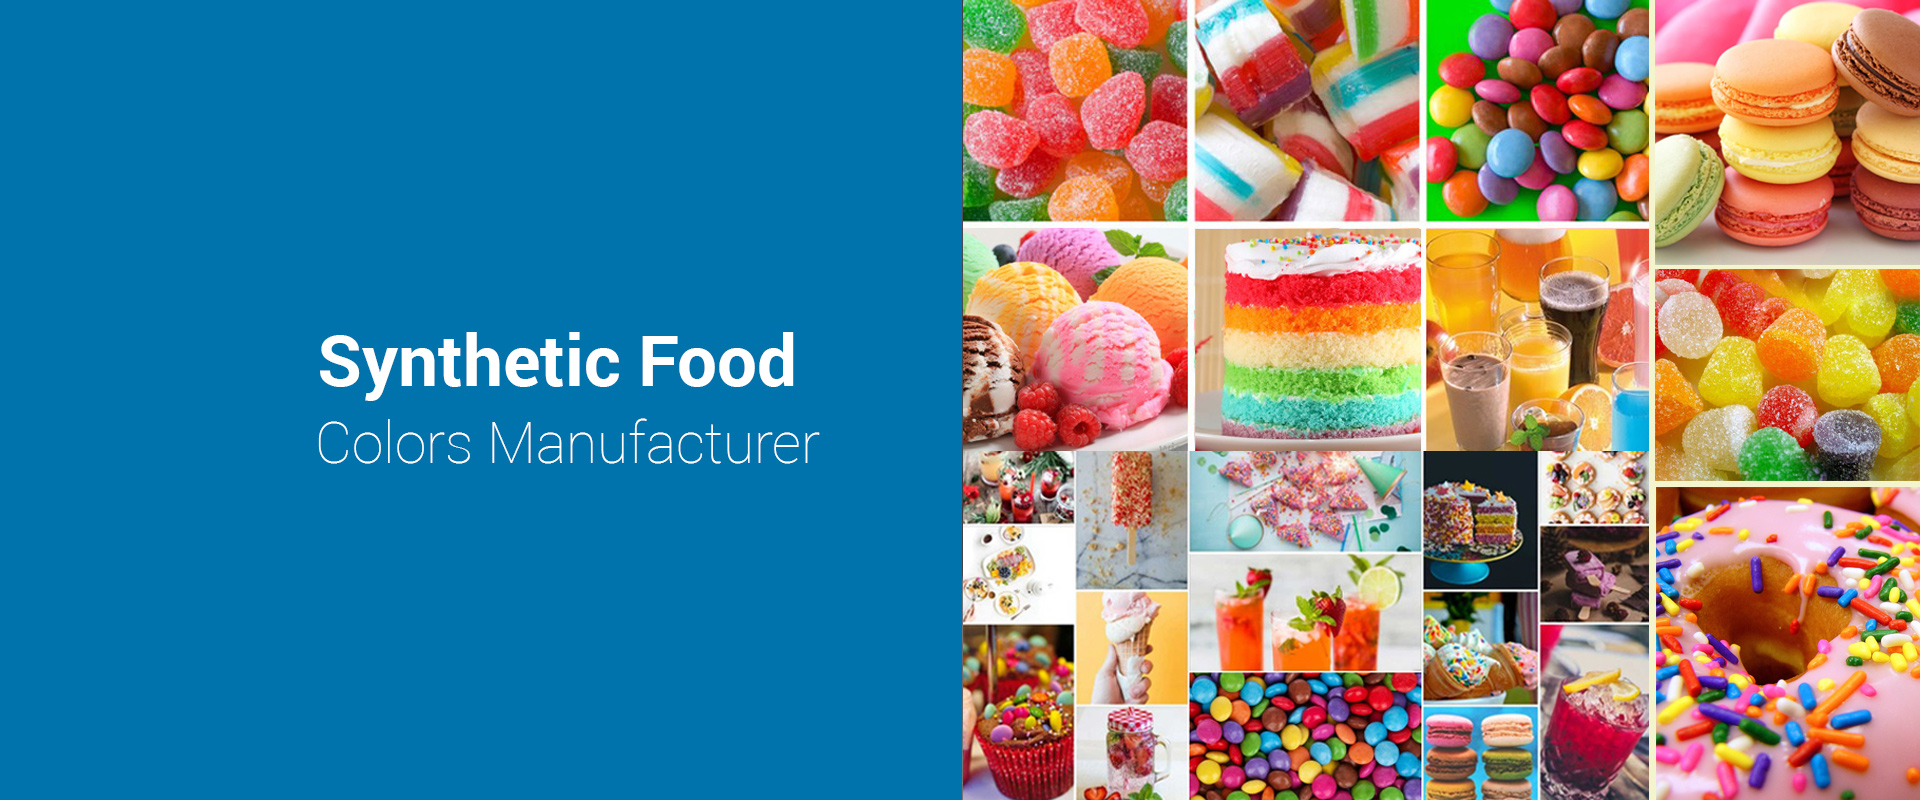 Food Colors, Synthetic Food Colors Manufacturer & Suppliers, India